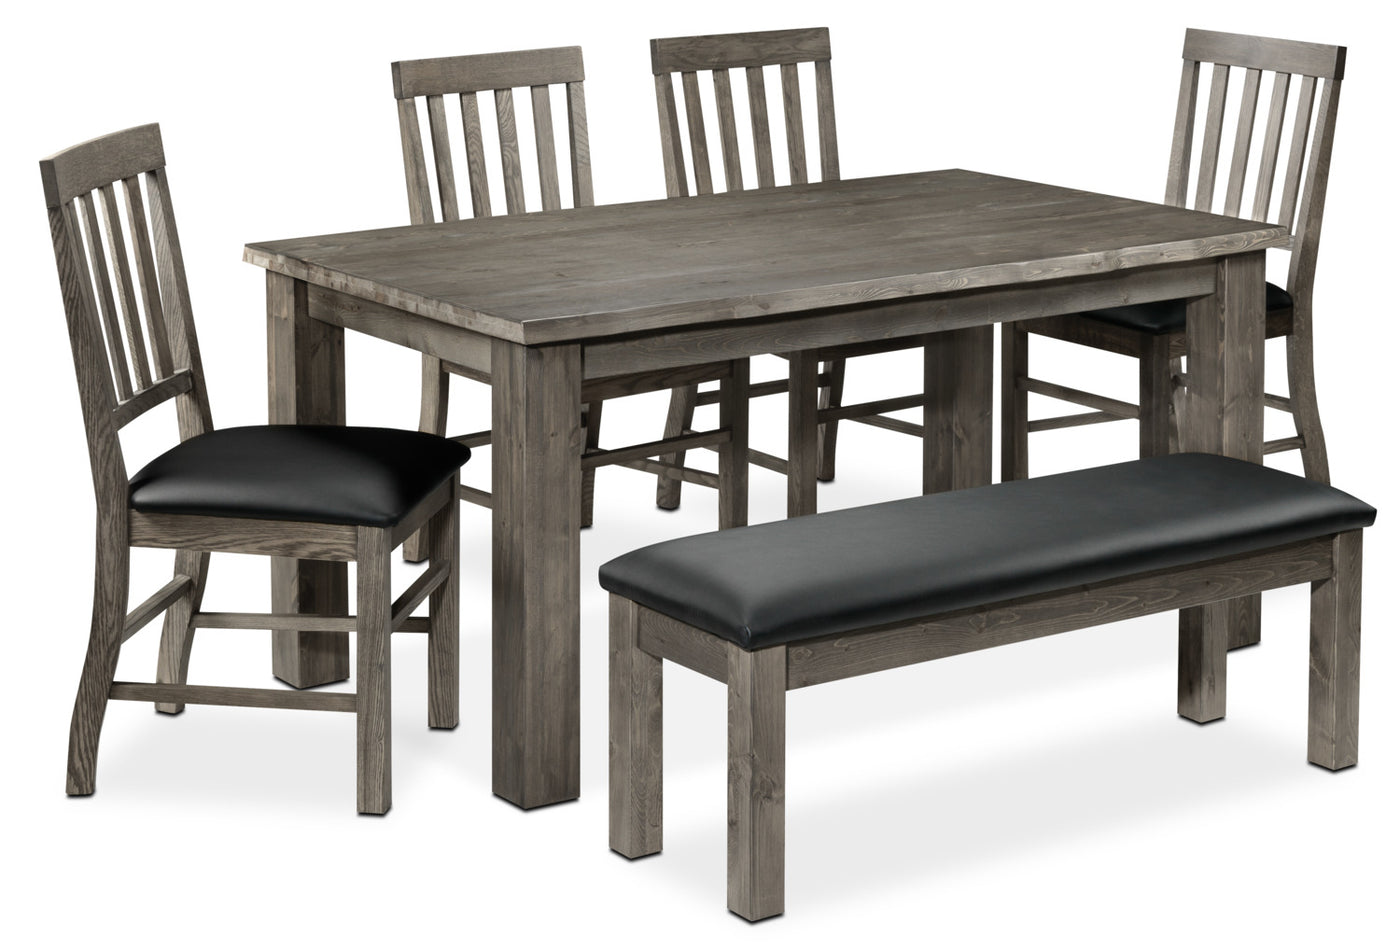 Groovy Porter 6 Piece Dining Room Set Slate And Black Dailytribune Chair Design For Home Dailytribuneorg